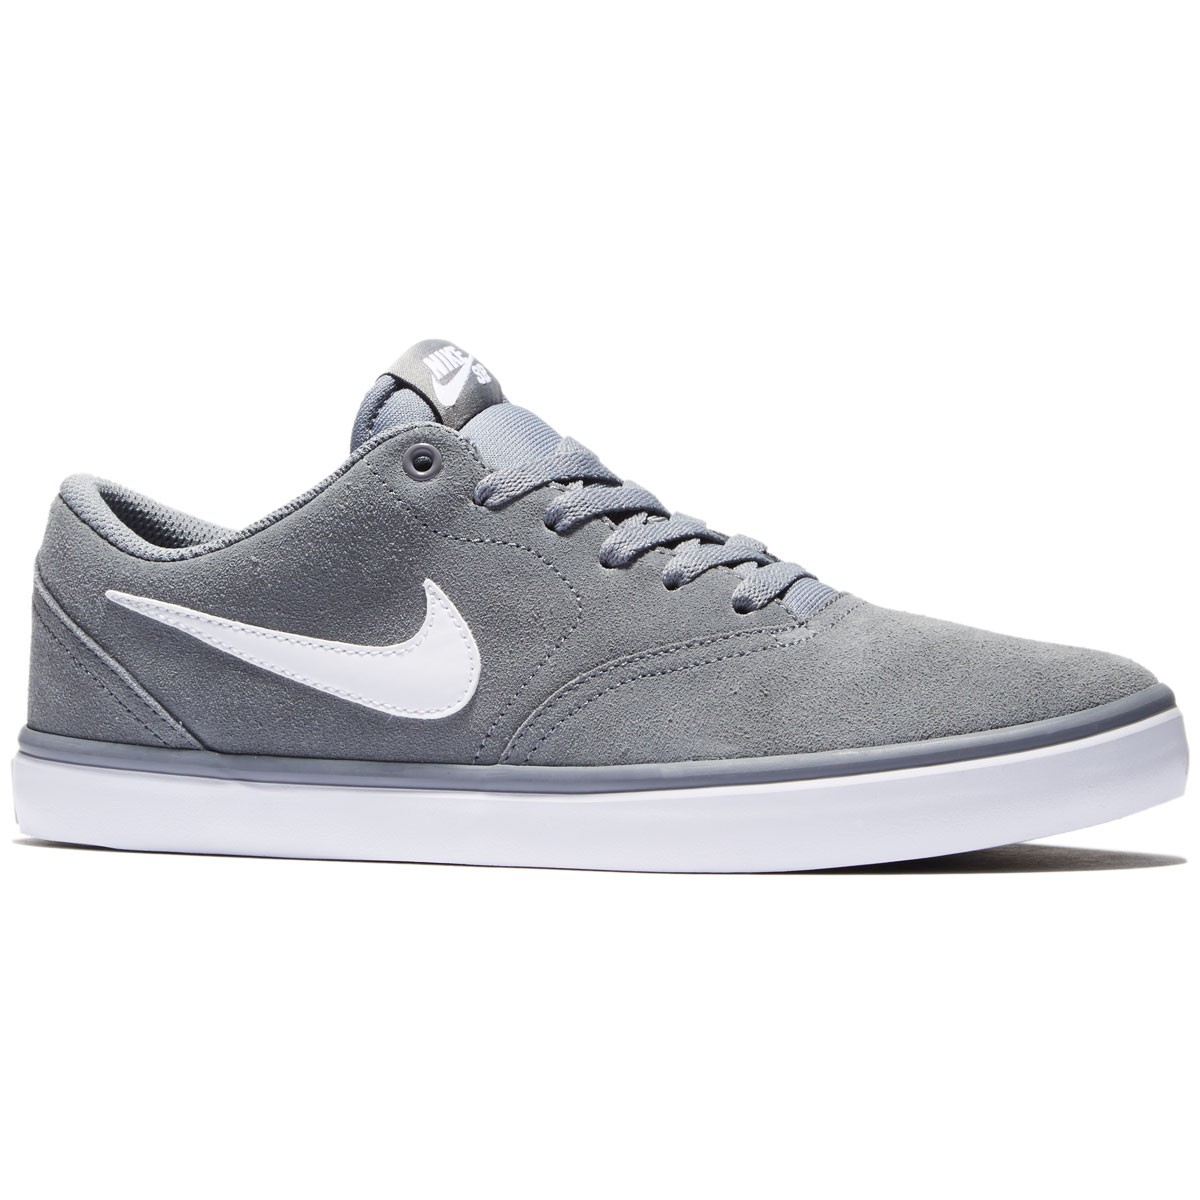 Nike SB Check Solarsoft Shoes - Cool Grey/White - 7.0